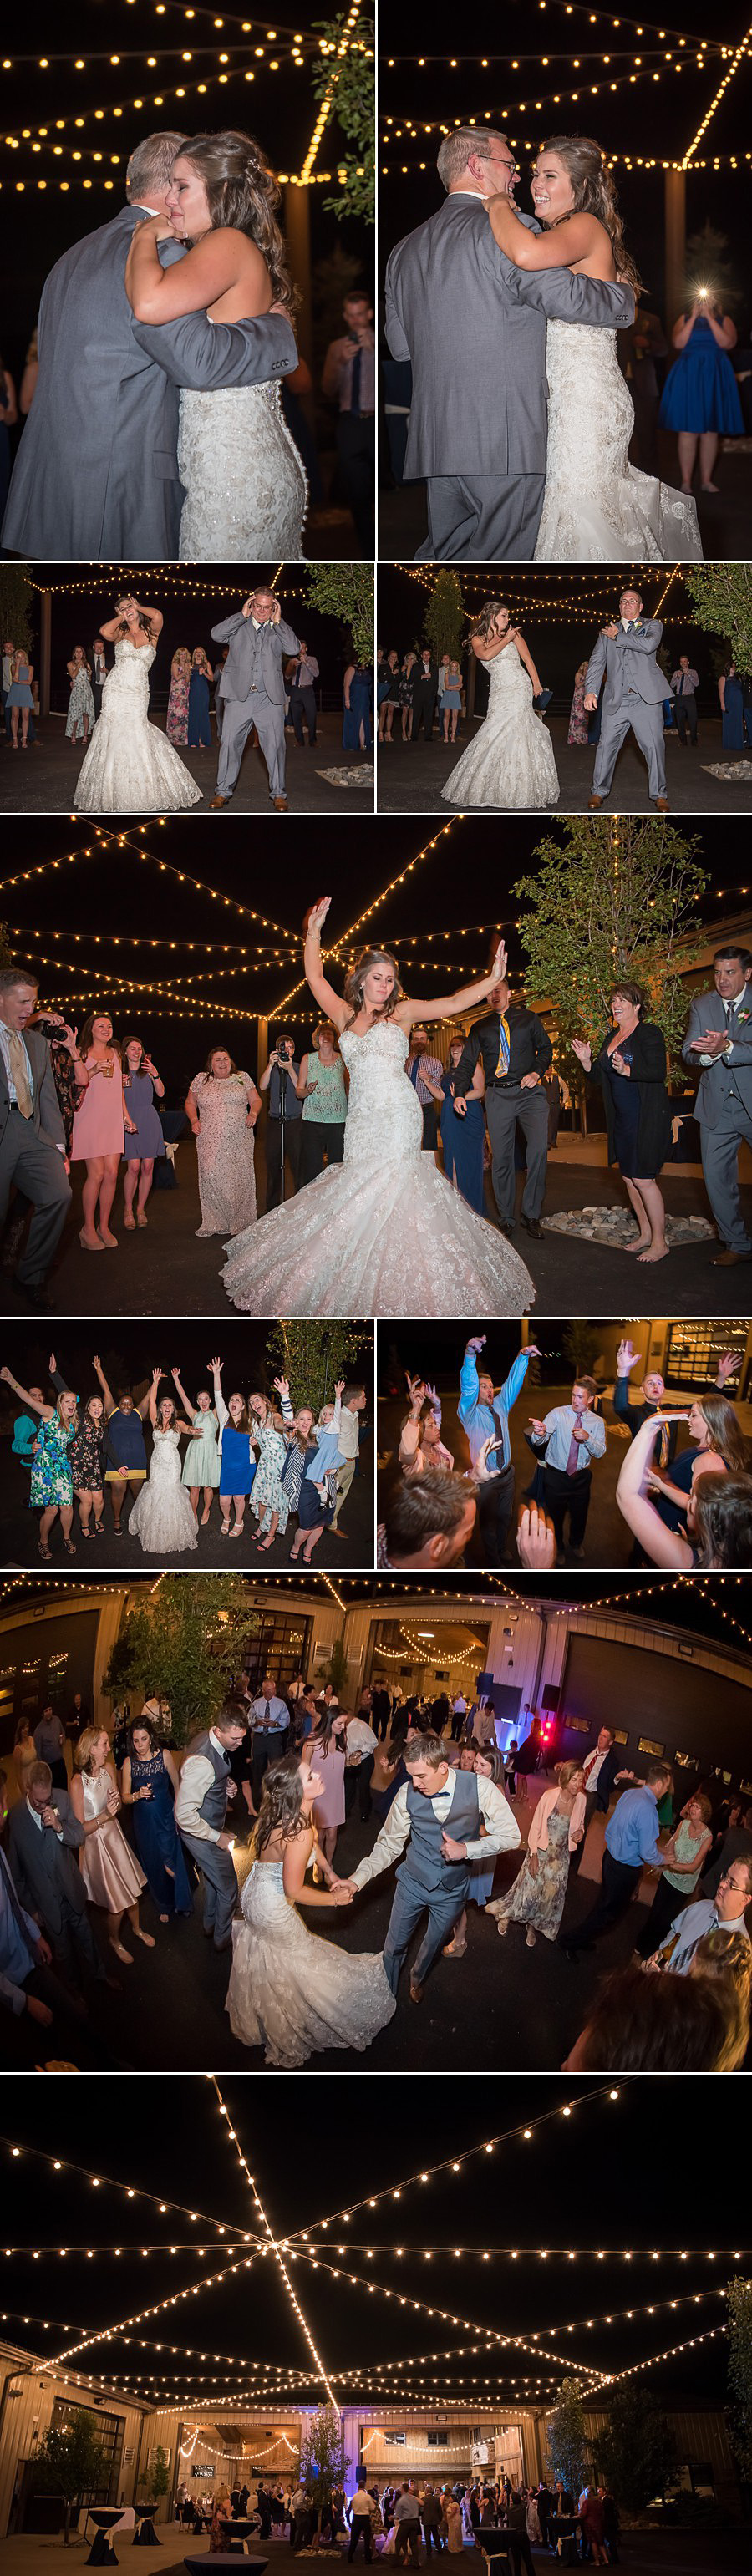 Reception dancing at Spruce Mountain Ranch wedding